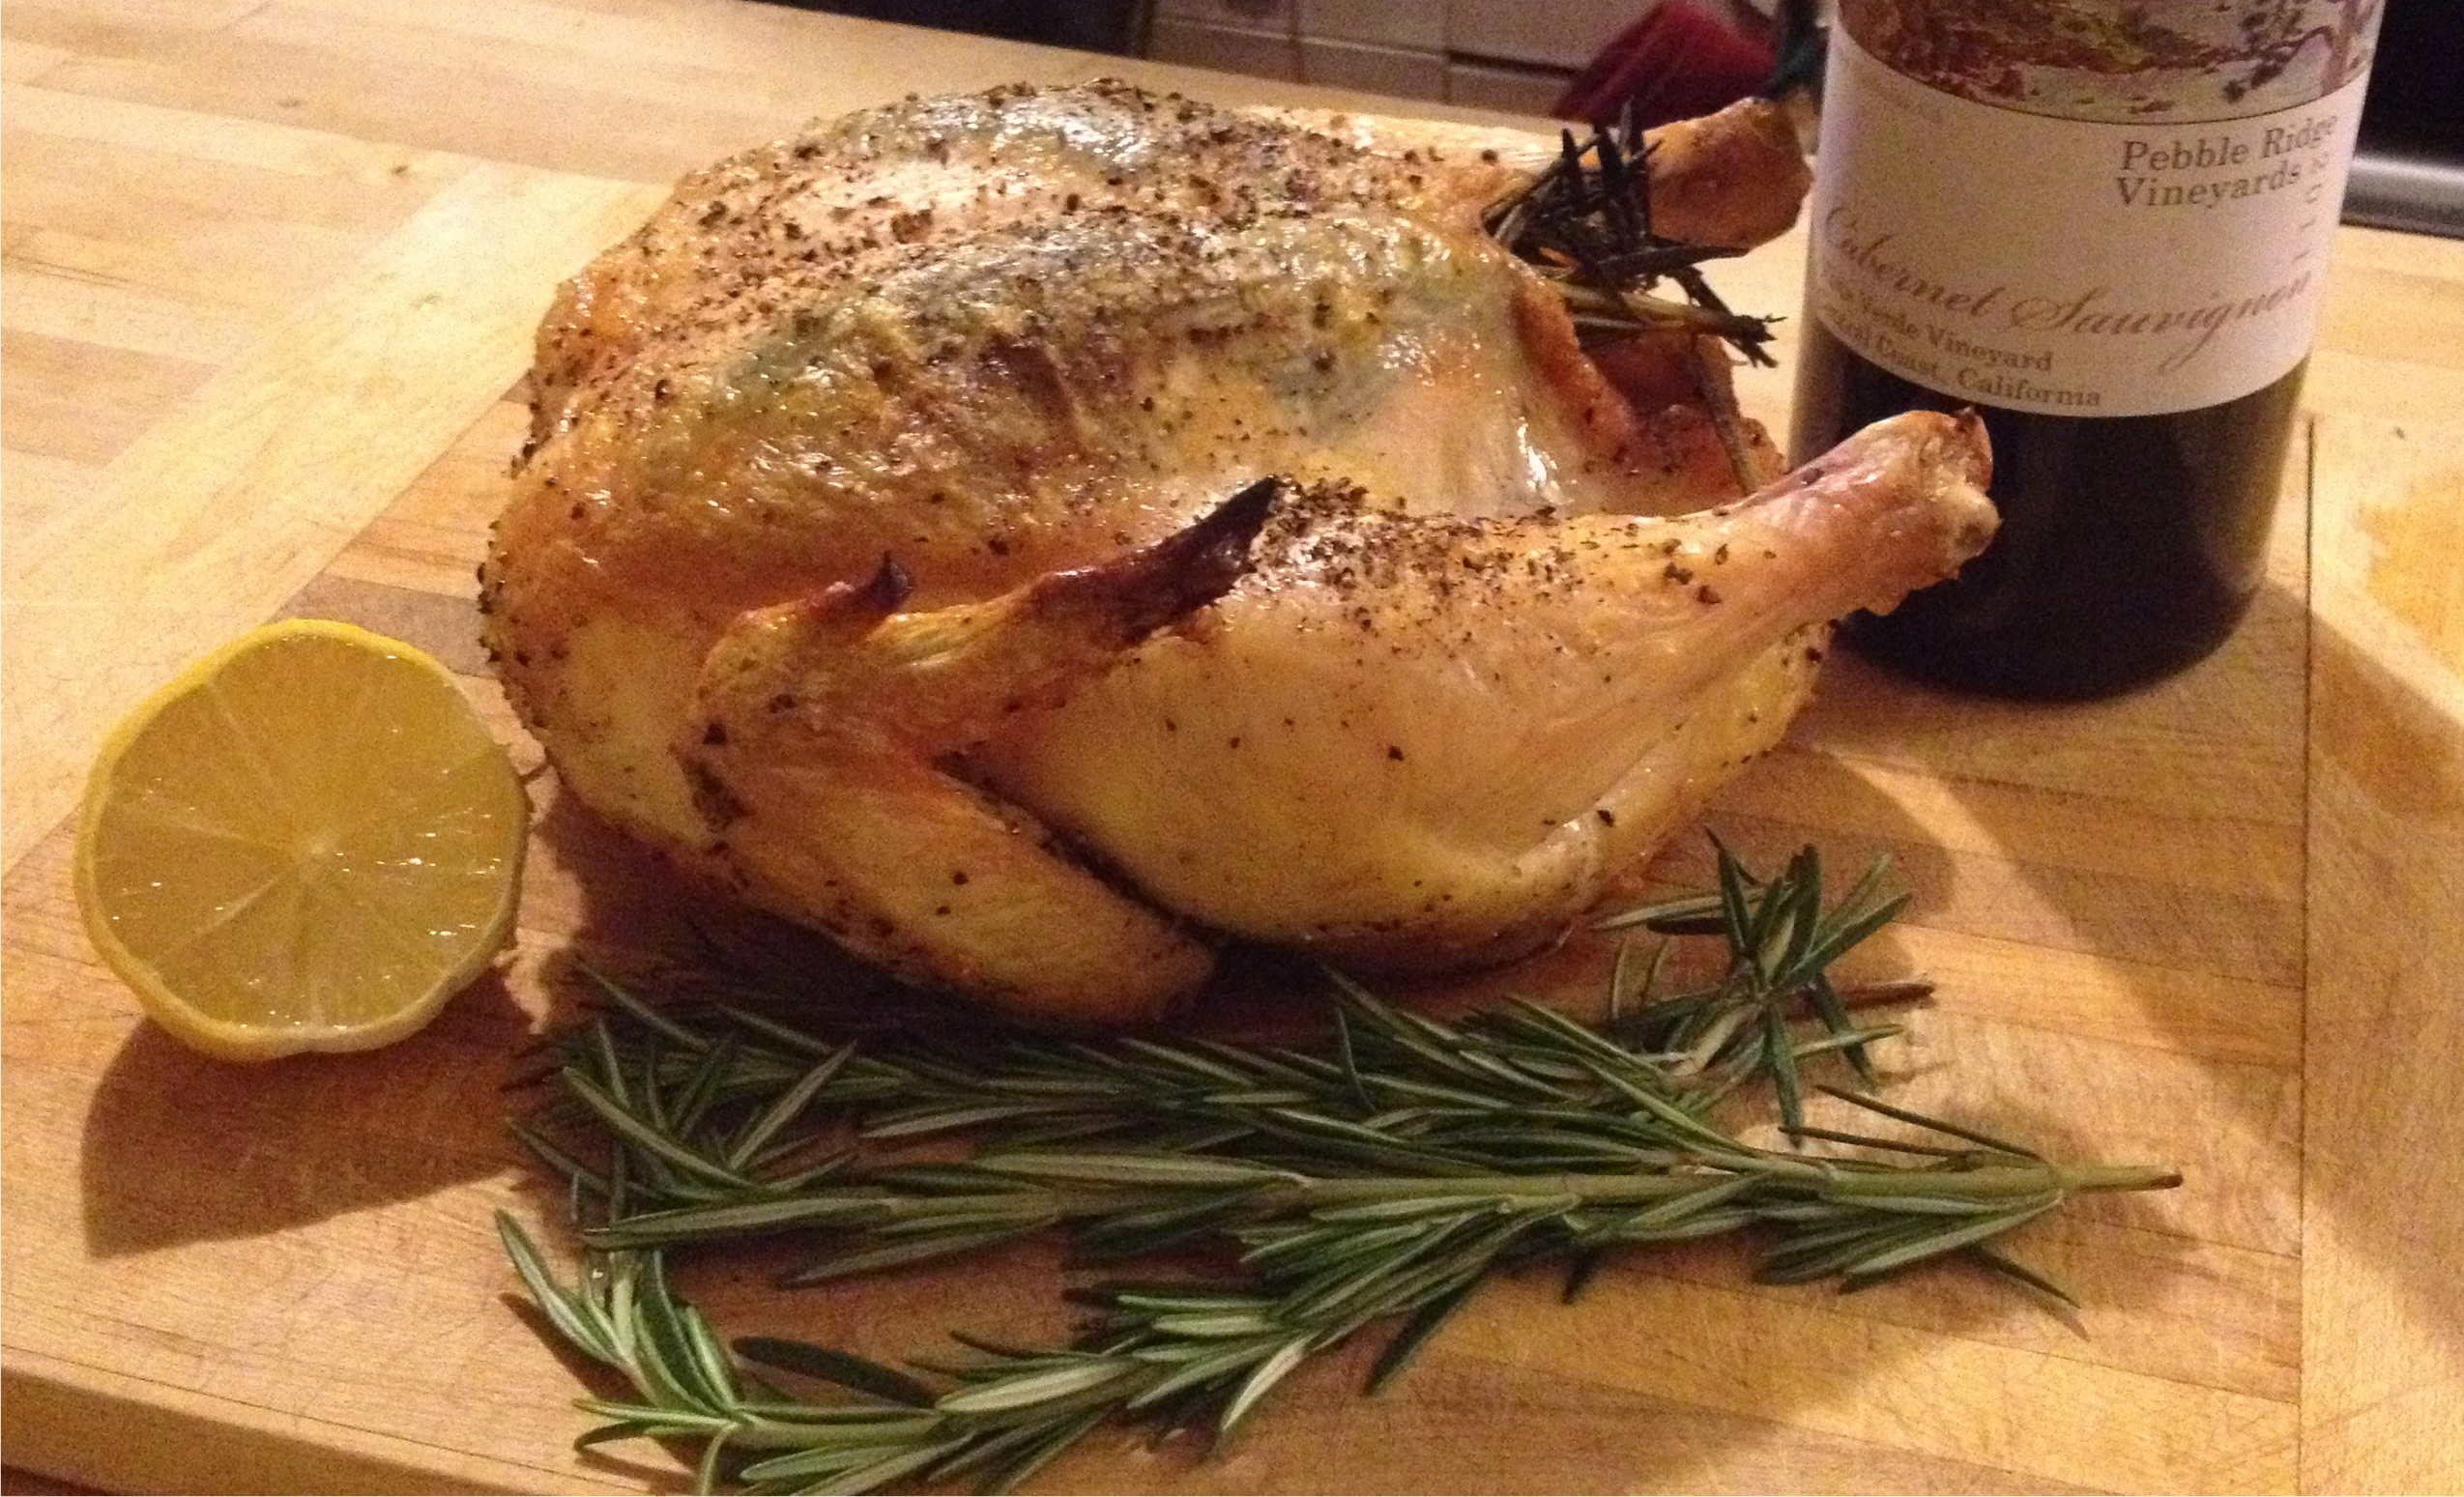 Roasted chicken on a board with rosemary and lemon garnish.